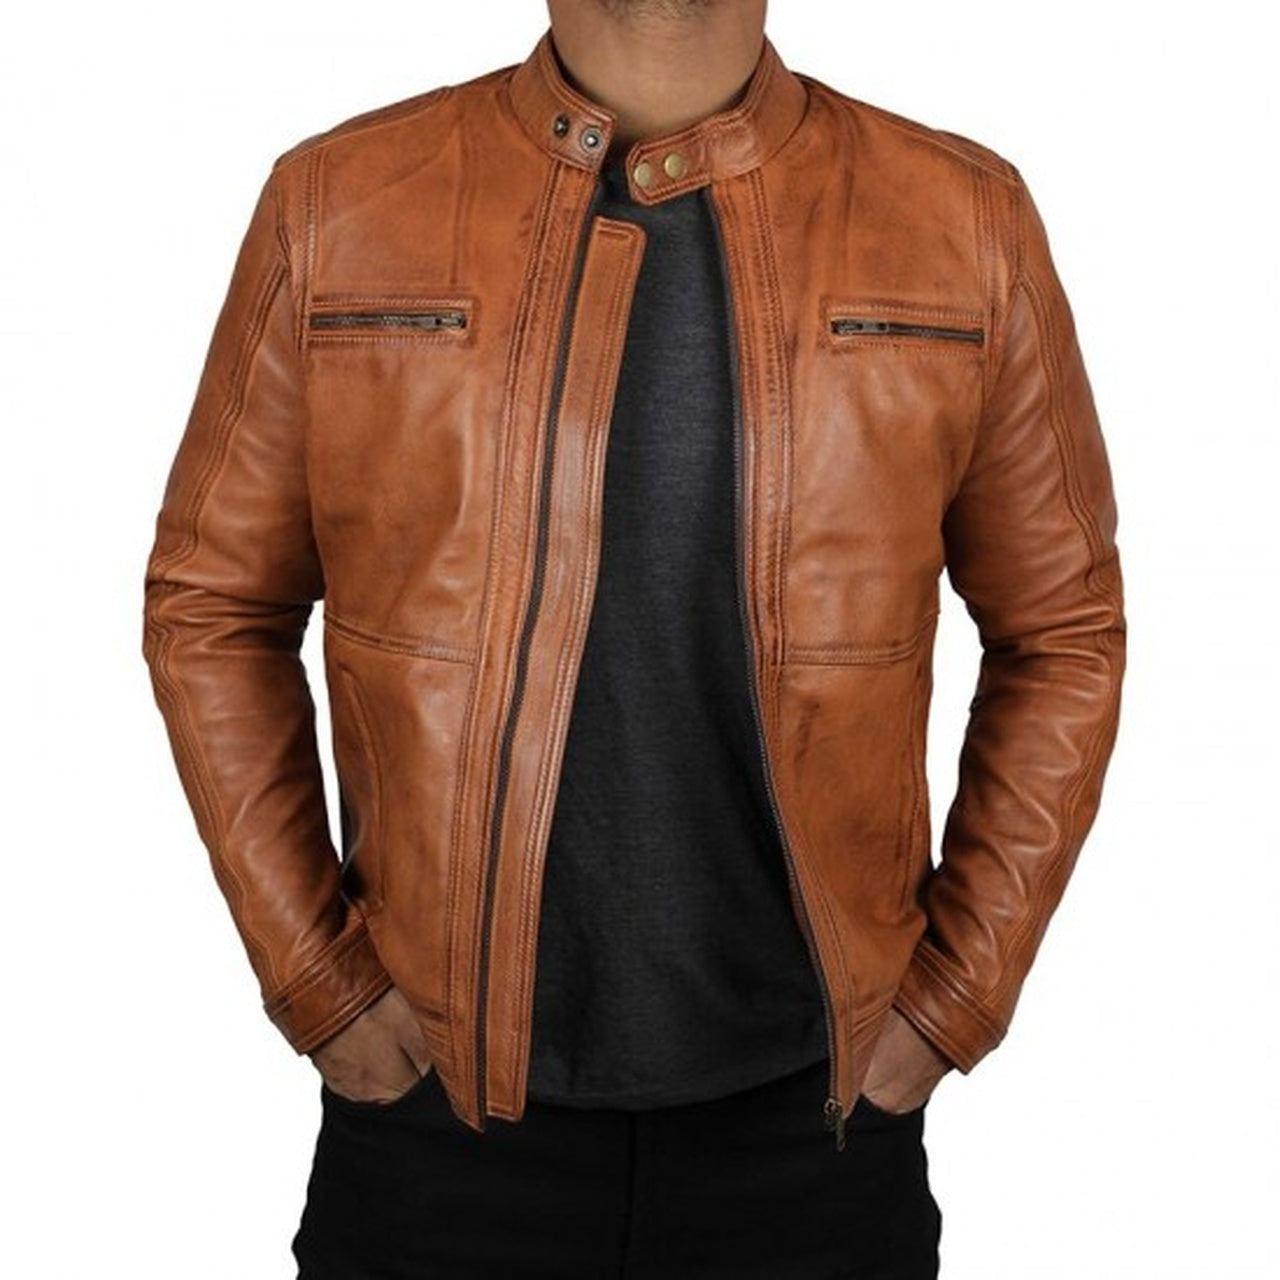 Classic Brown Leather Biker Jacket Men - Leather Jacket